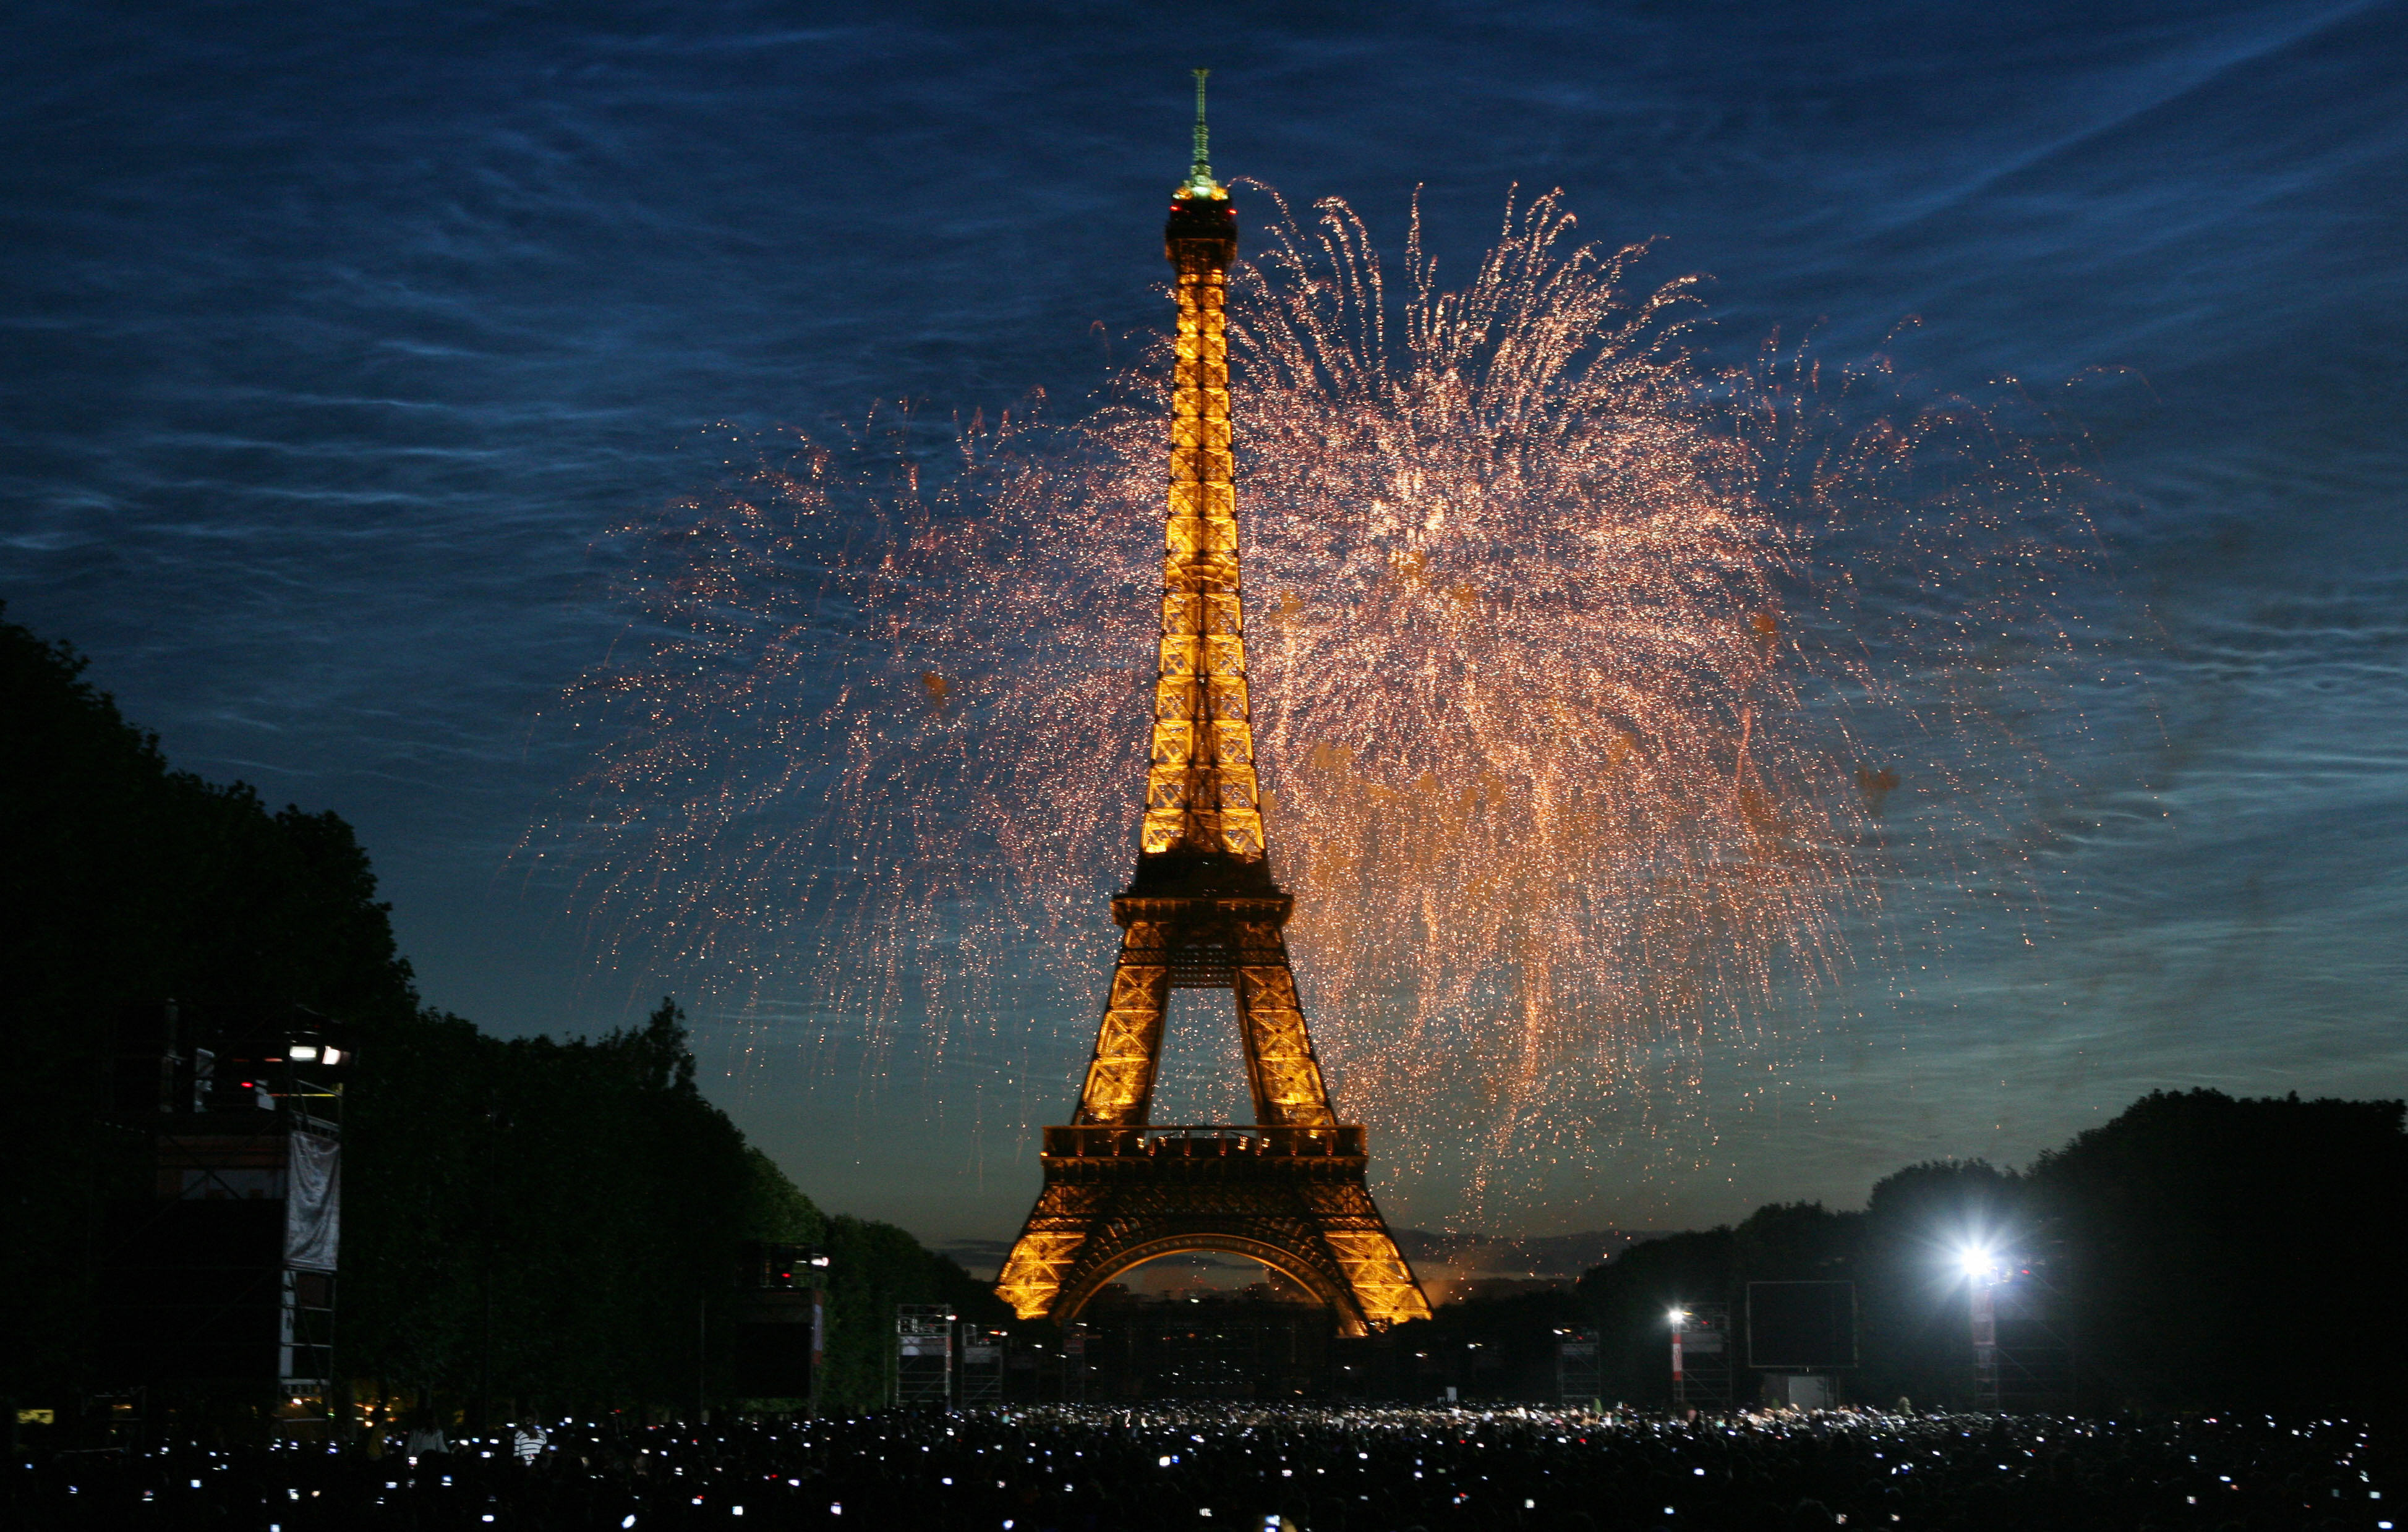 fireworks-burst-over-the-eiffel-tower-1 - french revolution pictures